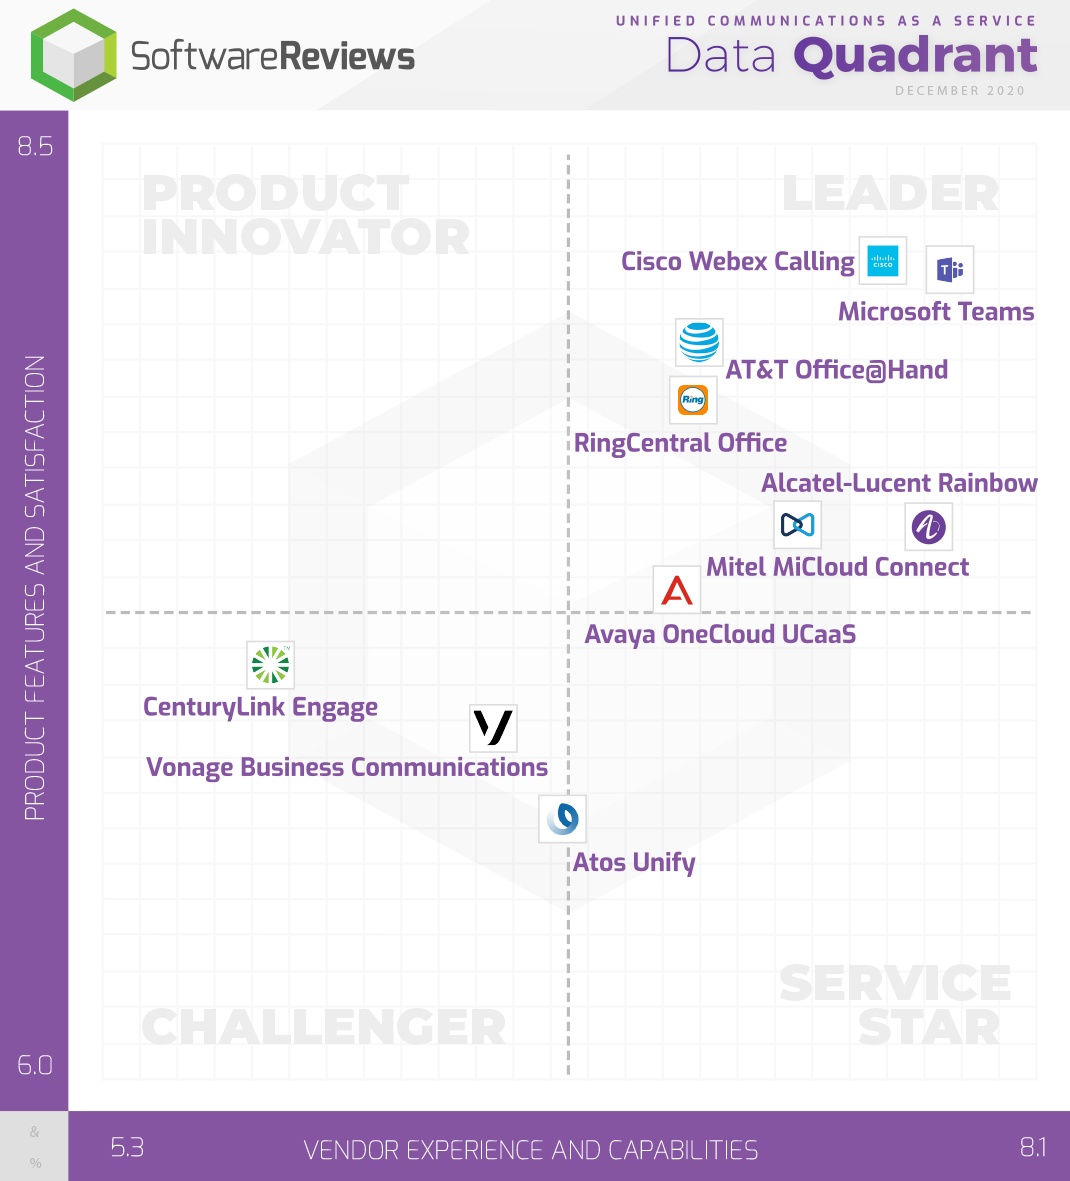 Unified Communications as a Service Data Quadrant